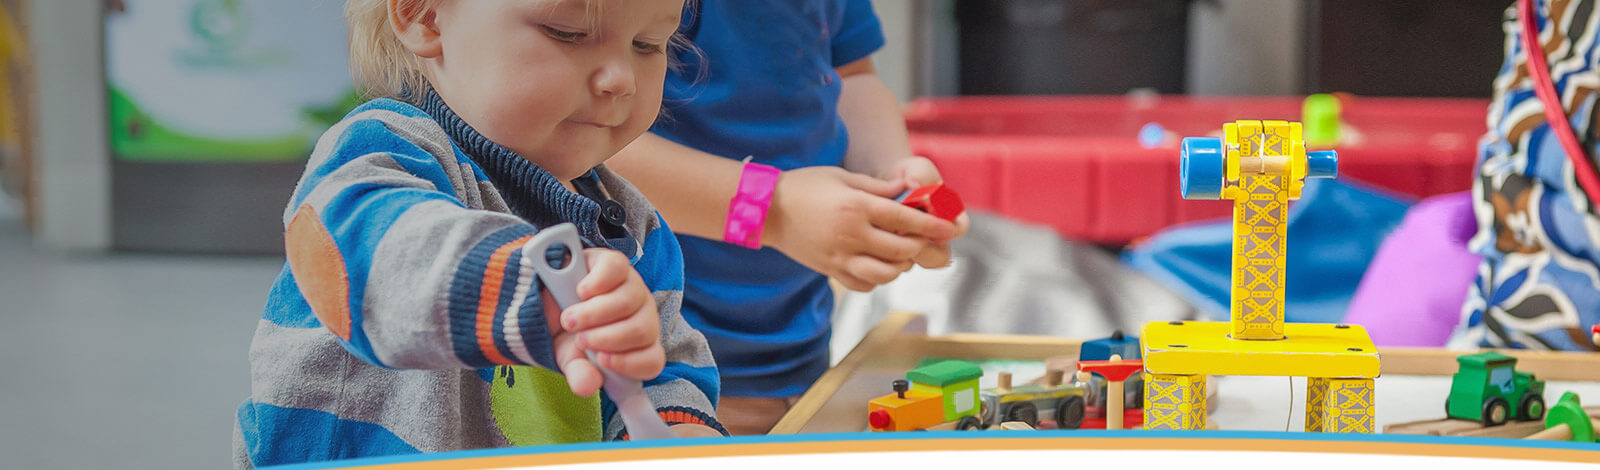 Inventive Minds Kidz Academy - Daycare and education programs servicing Vaughn, Richmond Hill, Thornhill